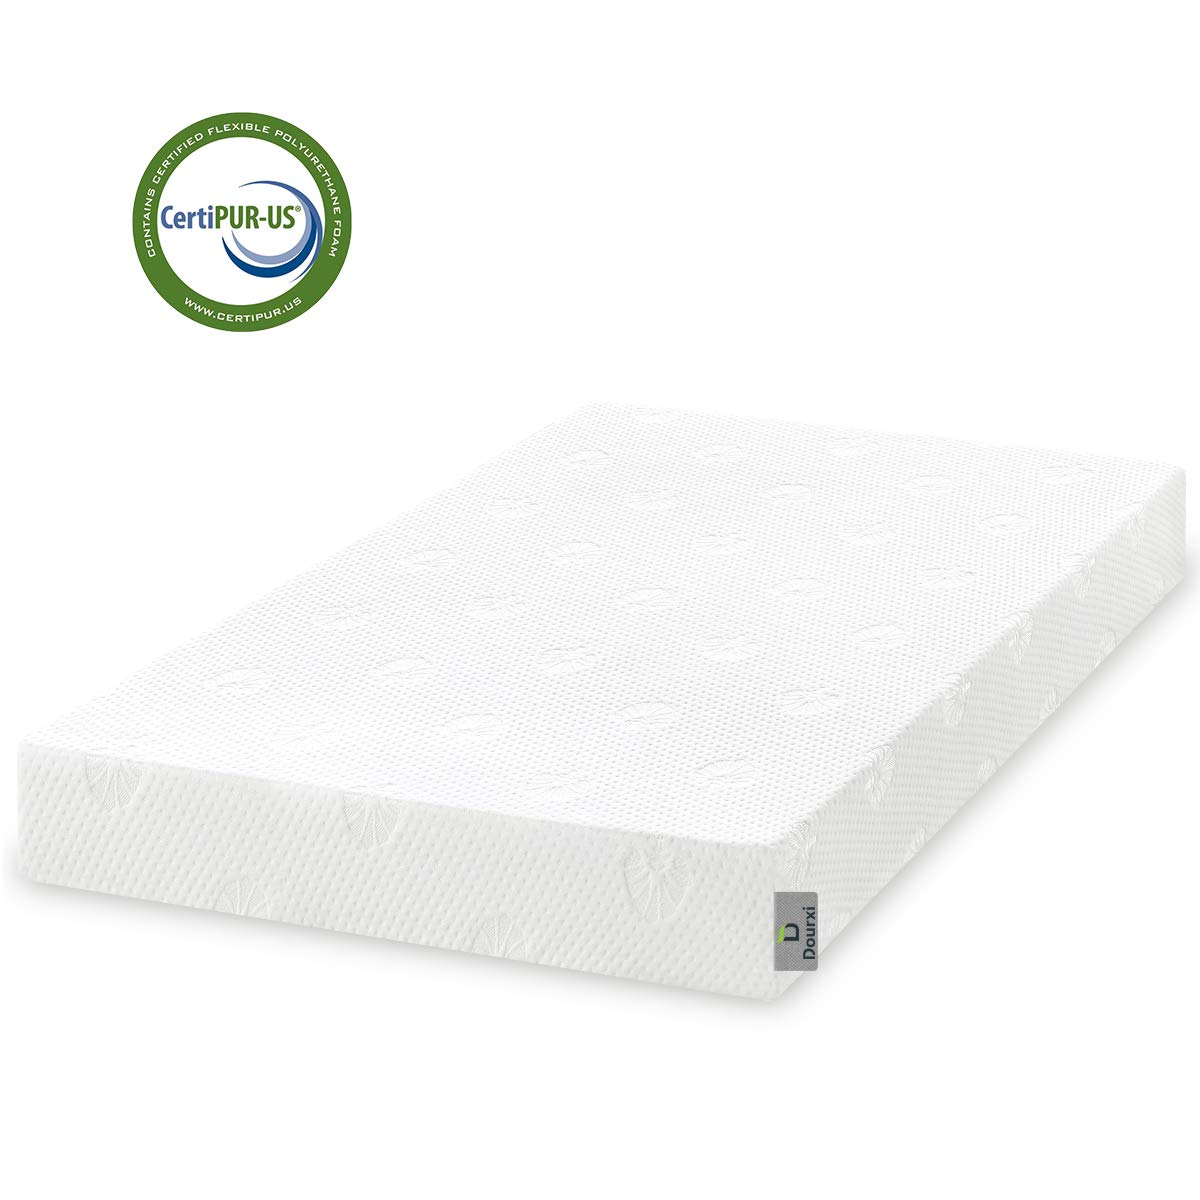 Dourxi Crib and Toddler Mattress - Ideal Breathable & Quiet Foam Mattress Airflow Sleep Surface with Removable Washable Outer Cover, Lightweight Crib Mattress by Dourxi